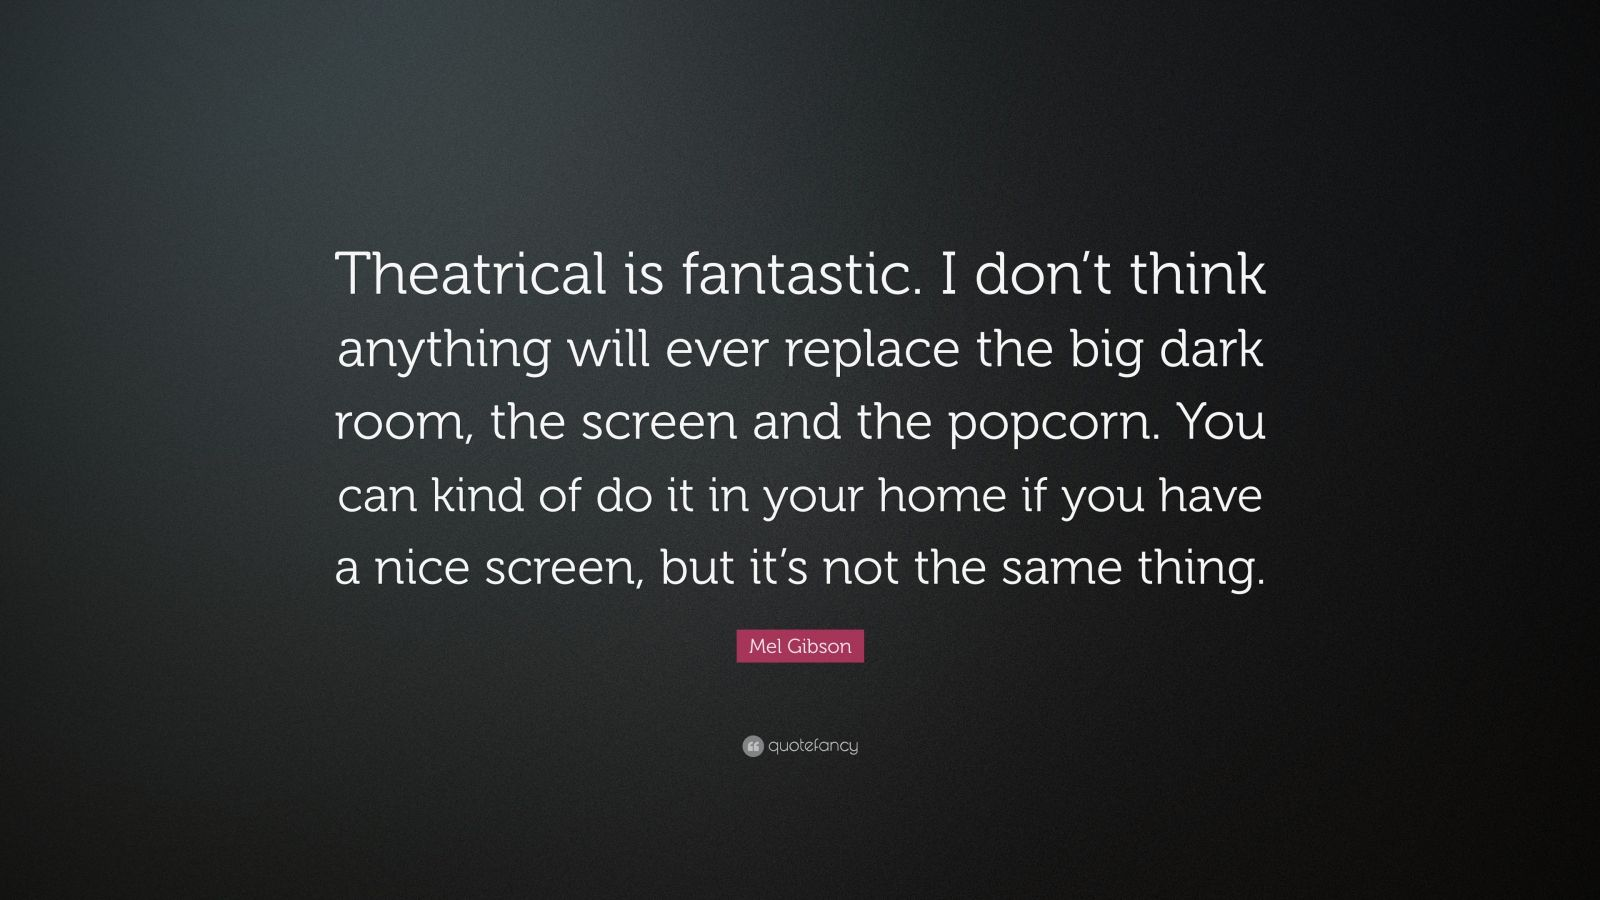 """Mel Gibson Quote: """"Theatrical is fantastic. I don't think anything will ever replace the big dark room, the screen and the popcorn. You can kind of do it in your home if you have a nice screen, but it's not the same thing."""""""